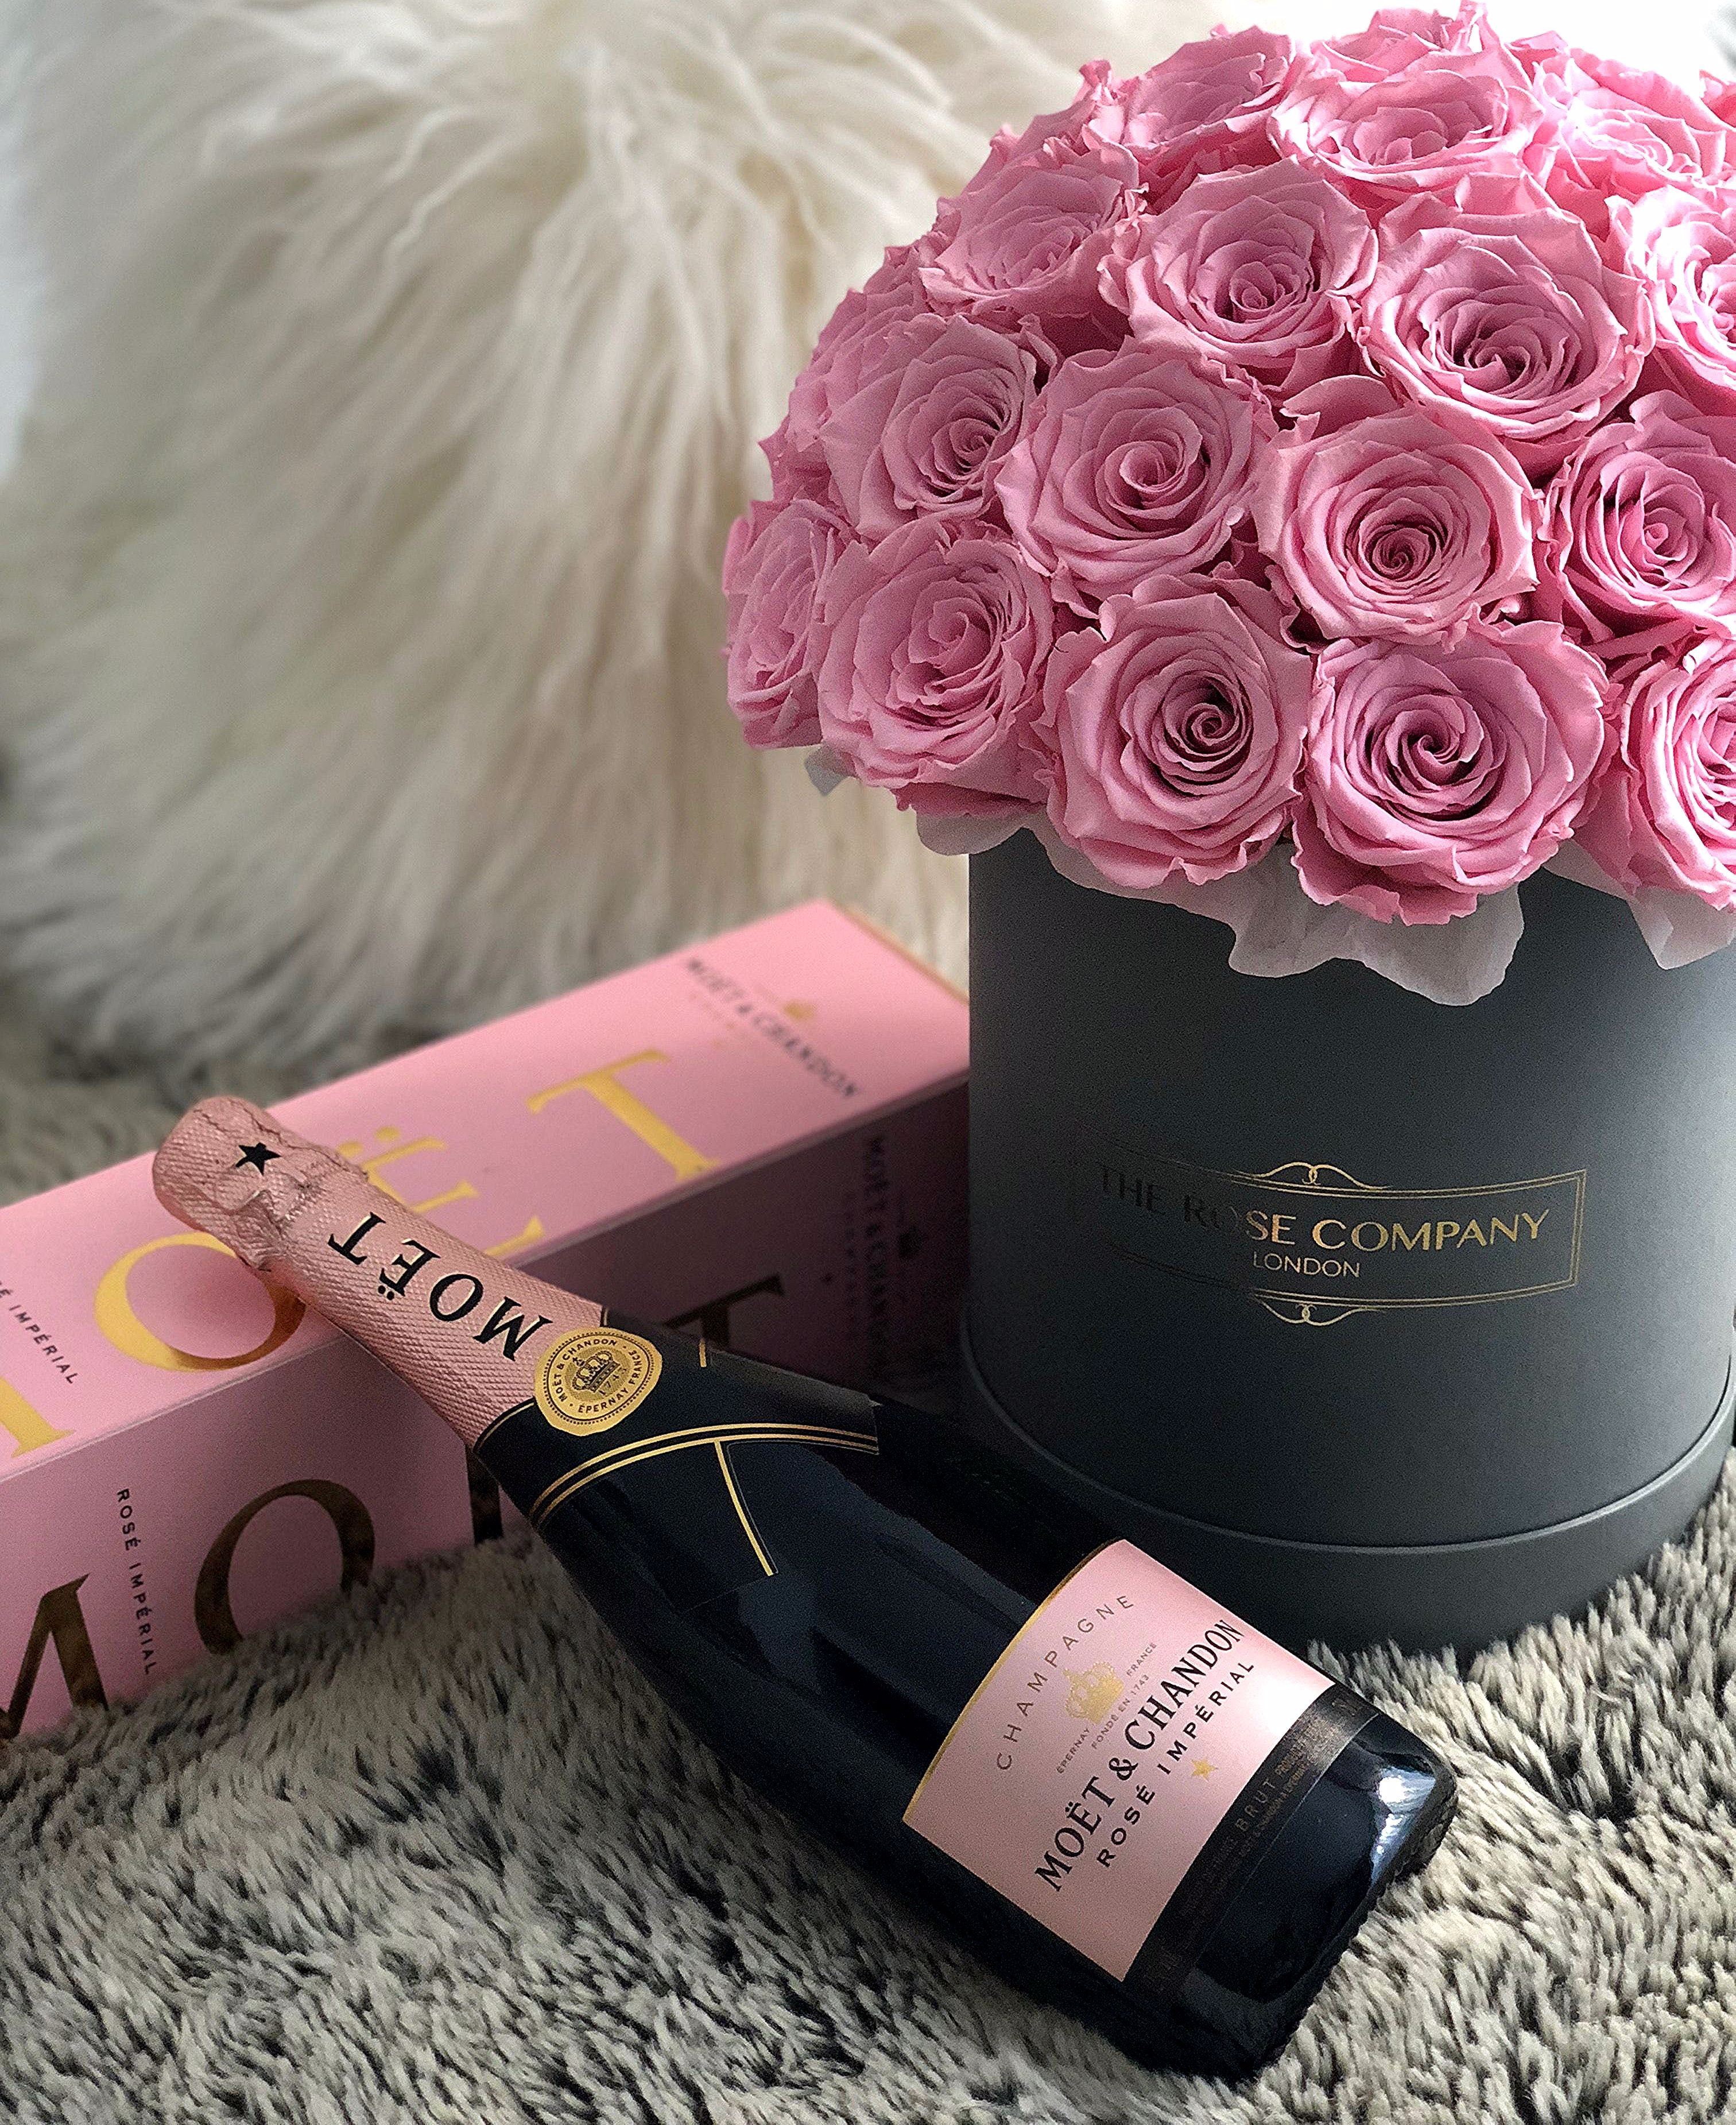 The Rose Company London Rose Box Champagne Birthday Happy Birthday Flower Birthday Flowers